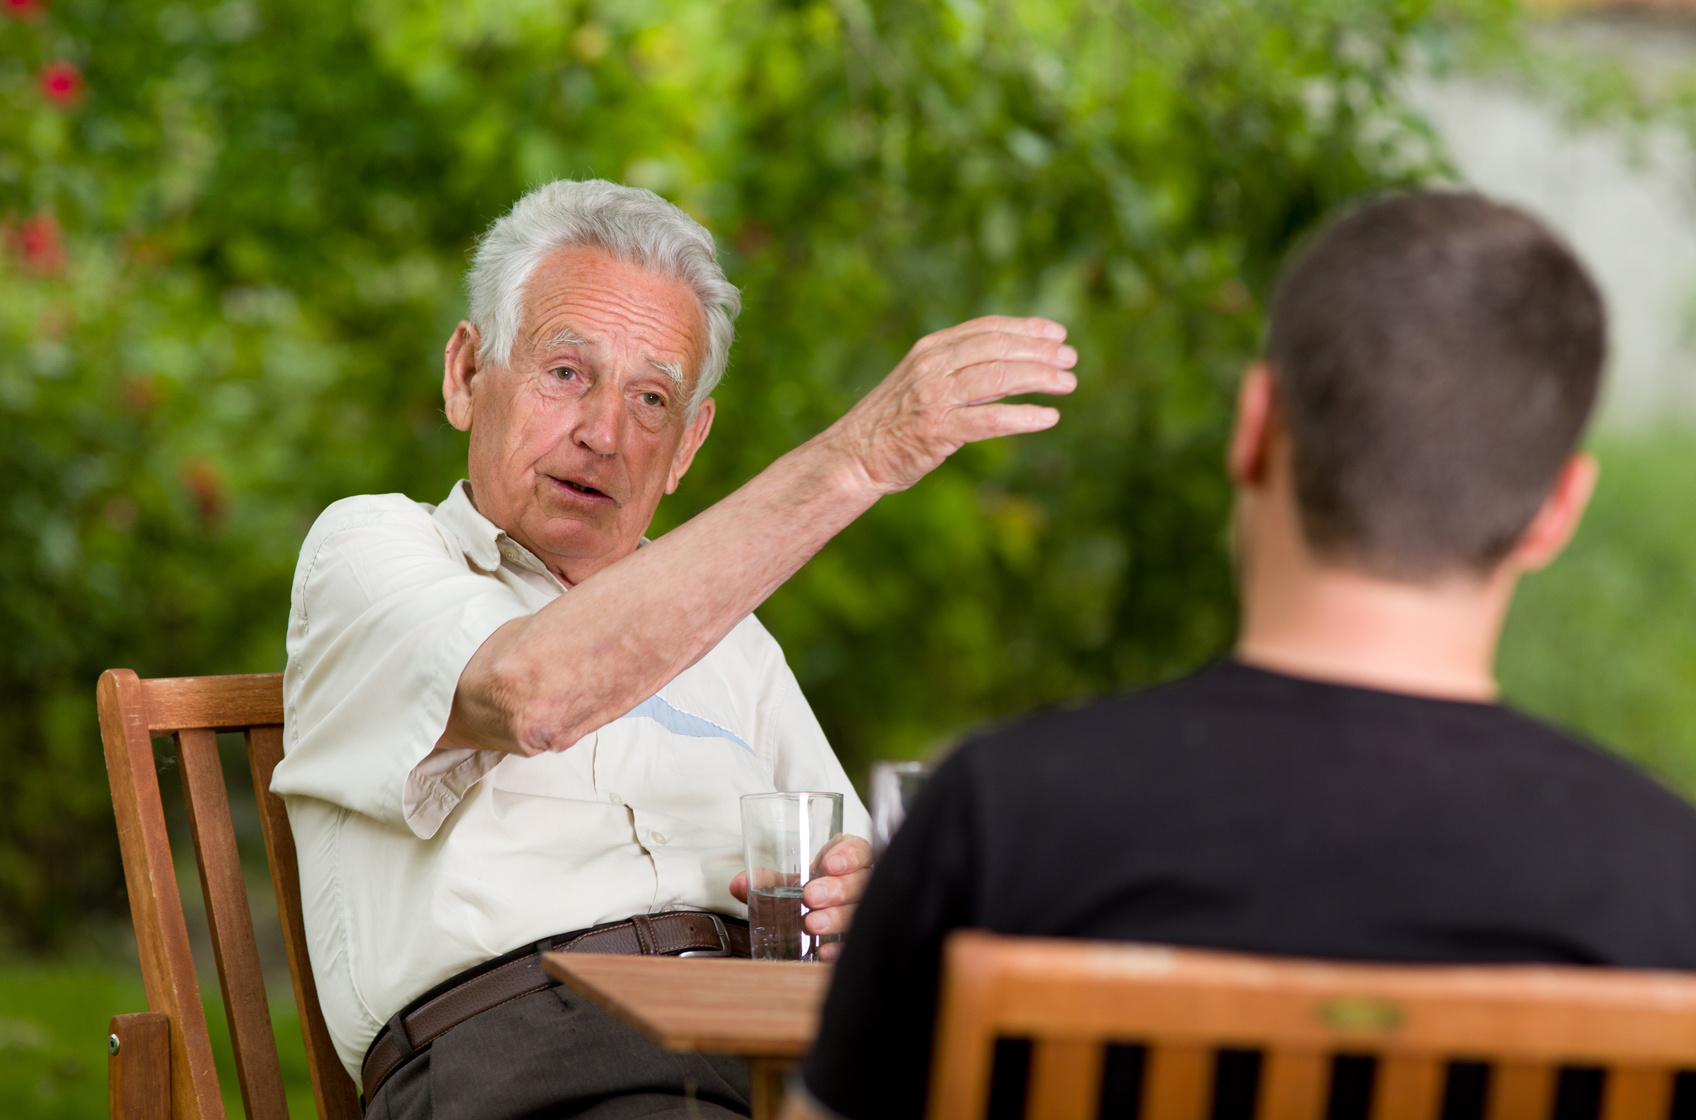 Serious old man talking with grandson and explaining by hand